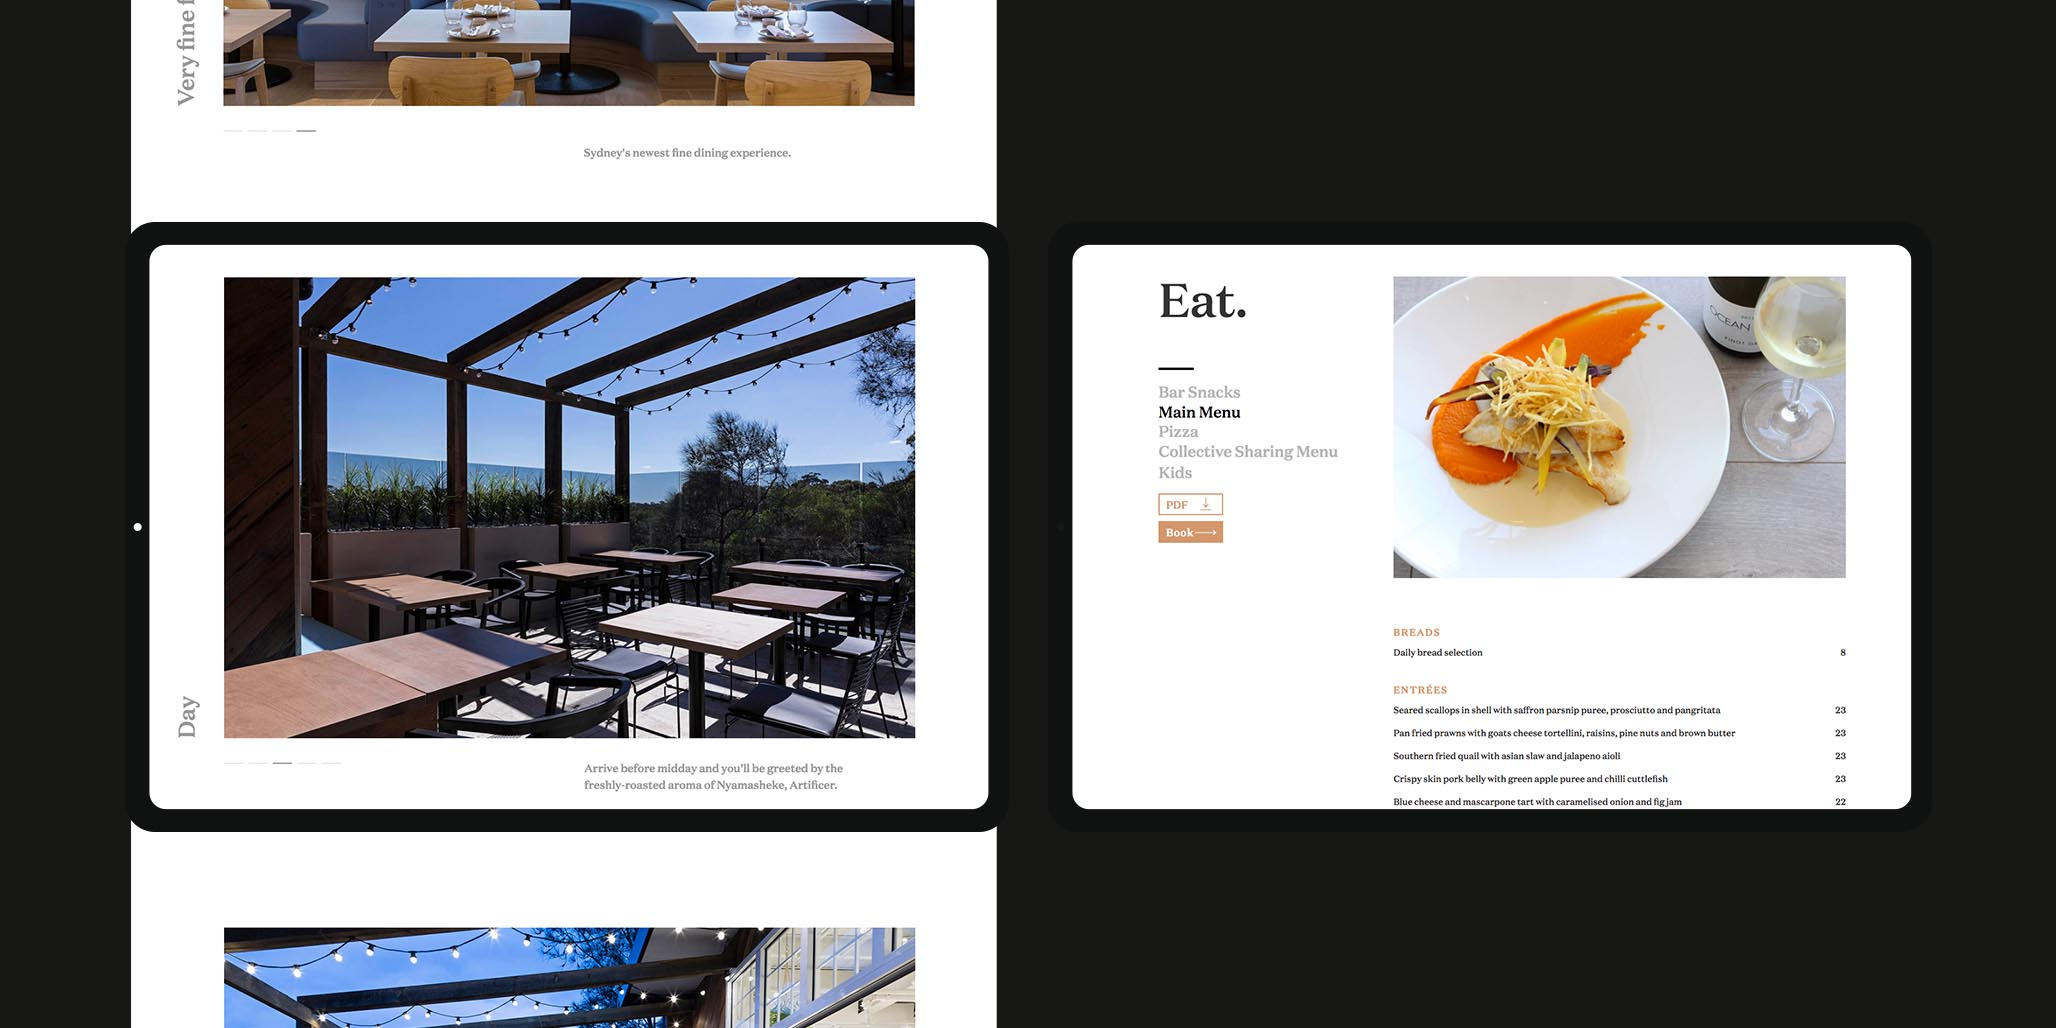 Brand & Website Design project in Sydney for hospitality venue Jensens Restaurant, a leader in the food service industry of Australia, image D